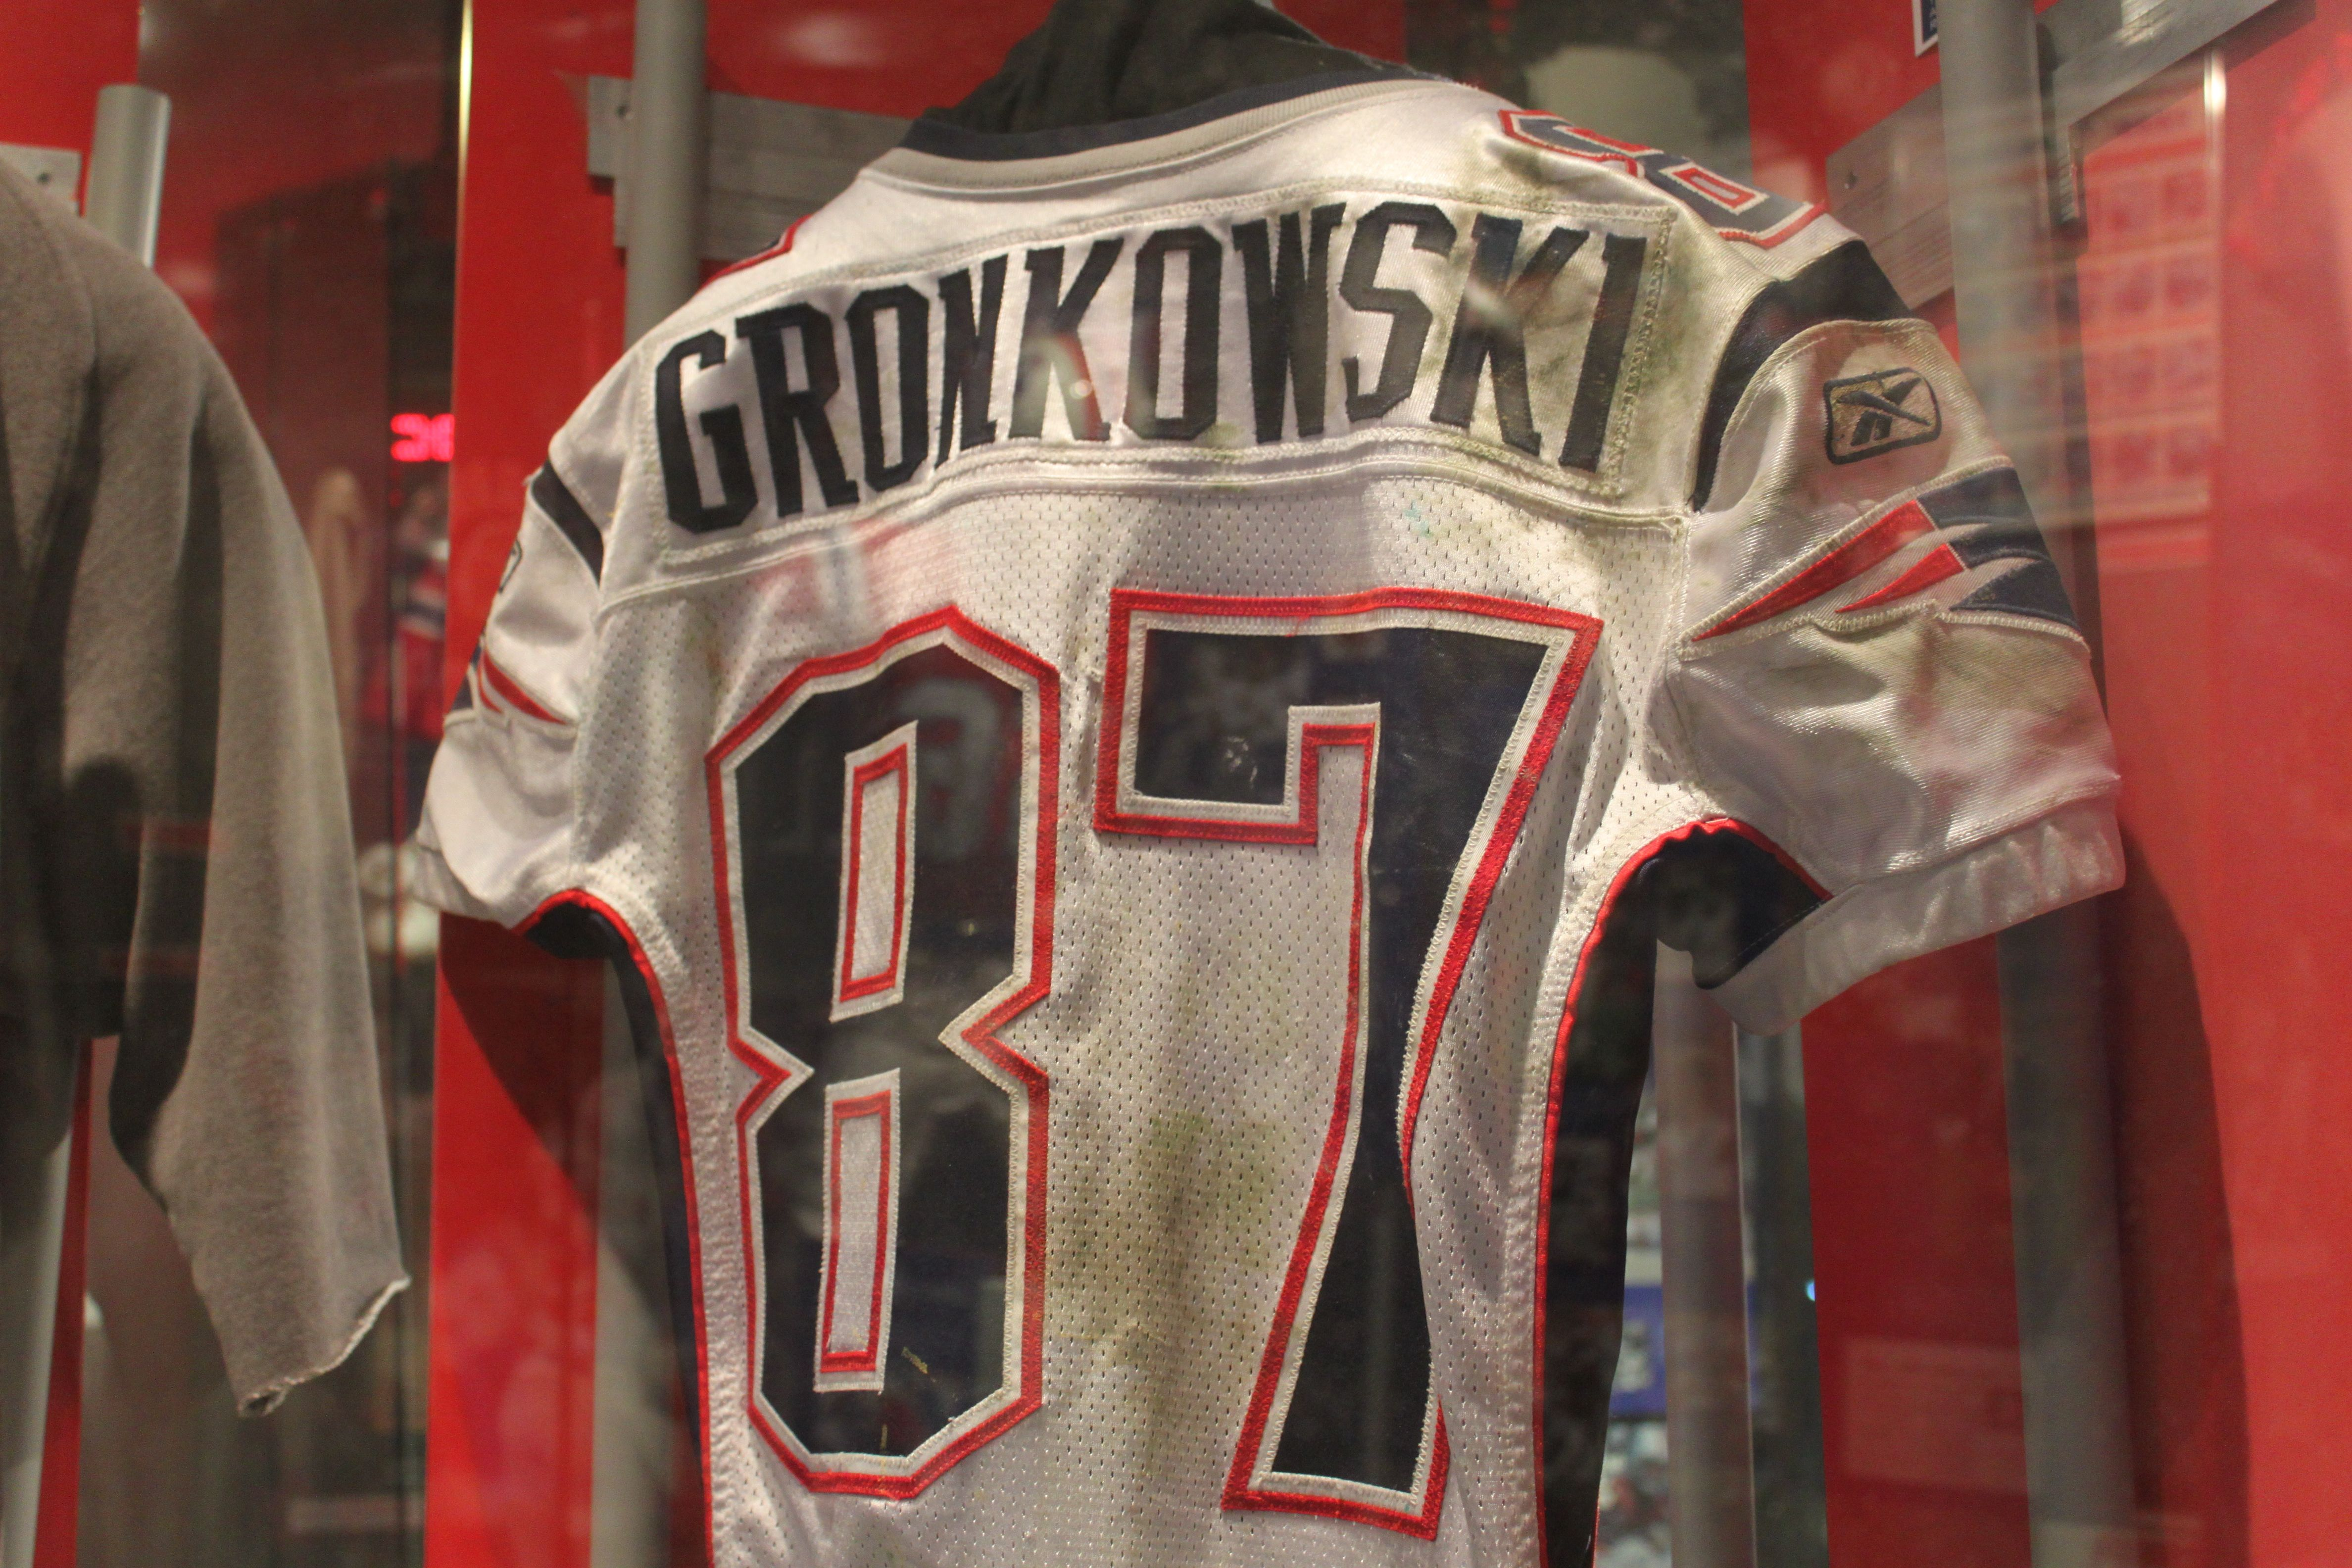 Rob Gronkowski's game jersey worn when he set an NFL record for touchdown receptions by a tight end against the Redskins.